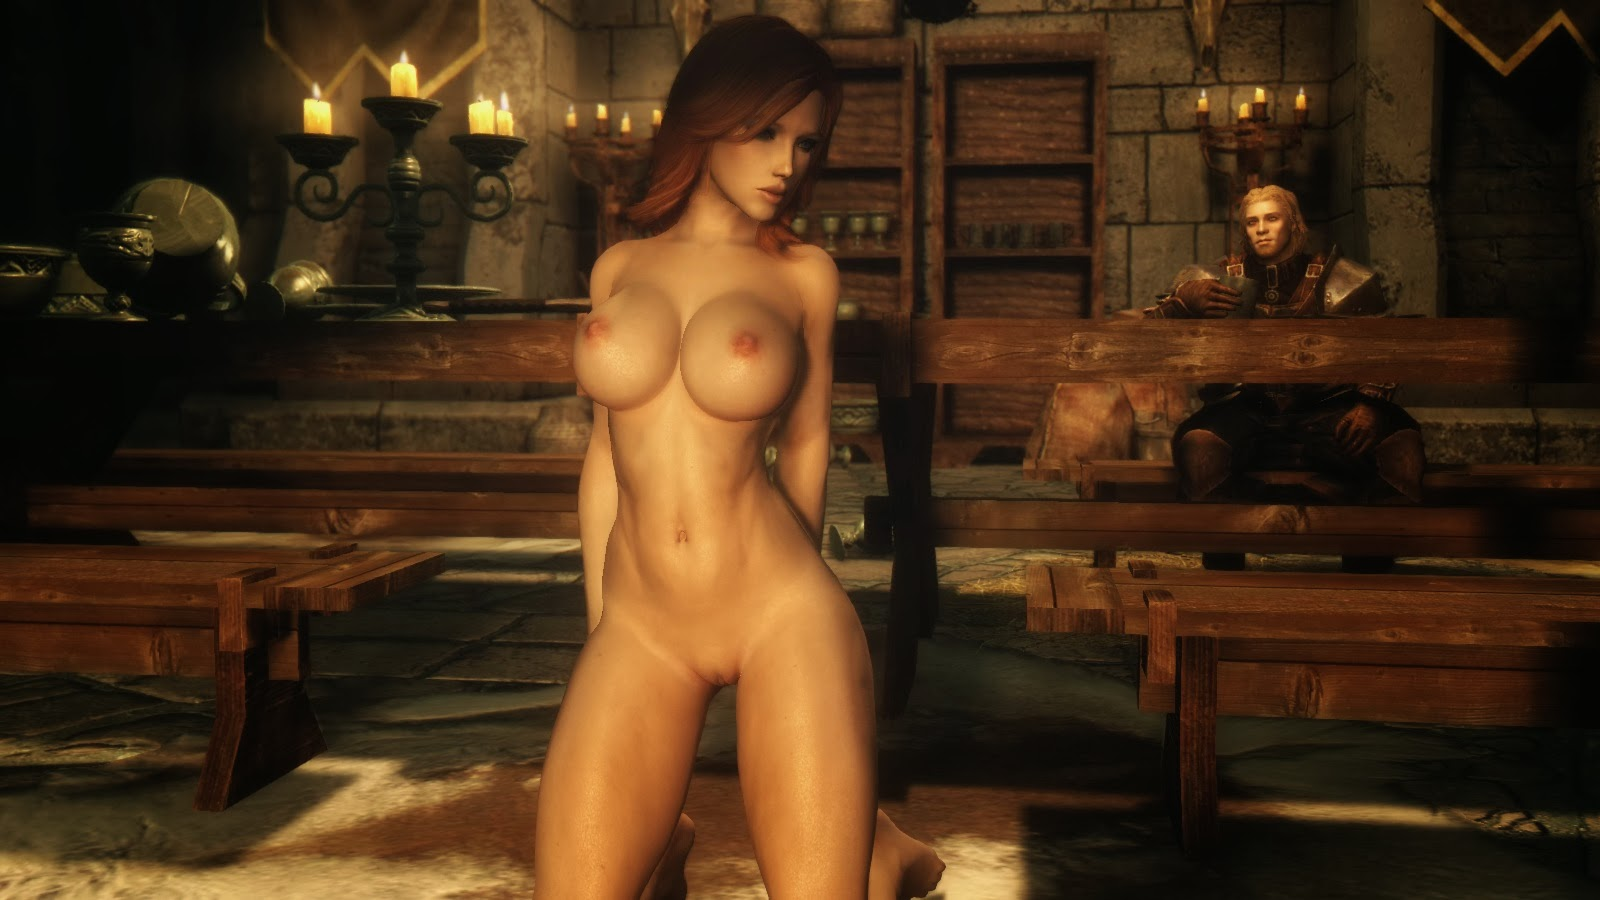 Skyrim sex nude -youtube exposed pornstar